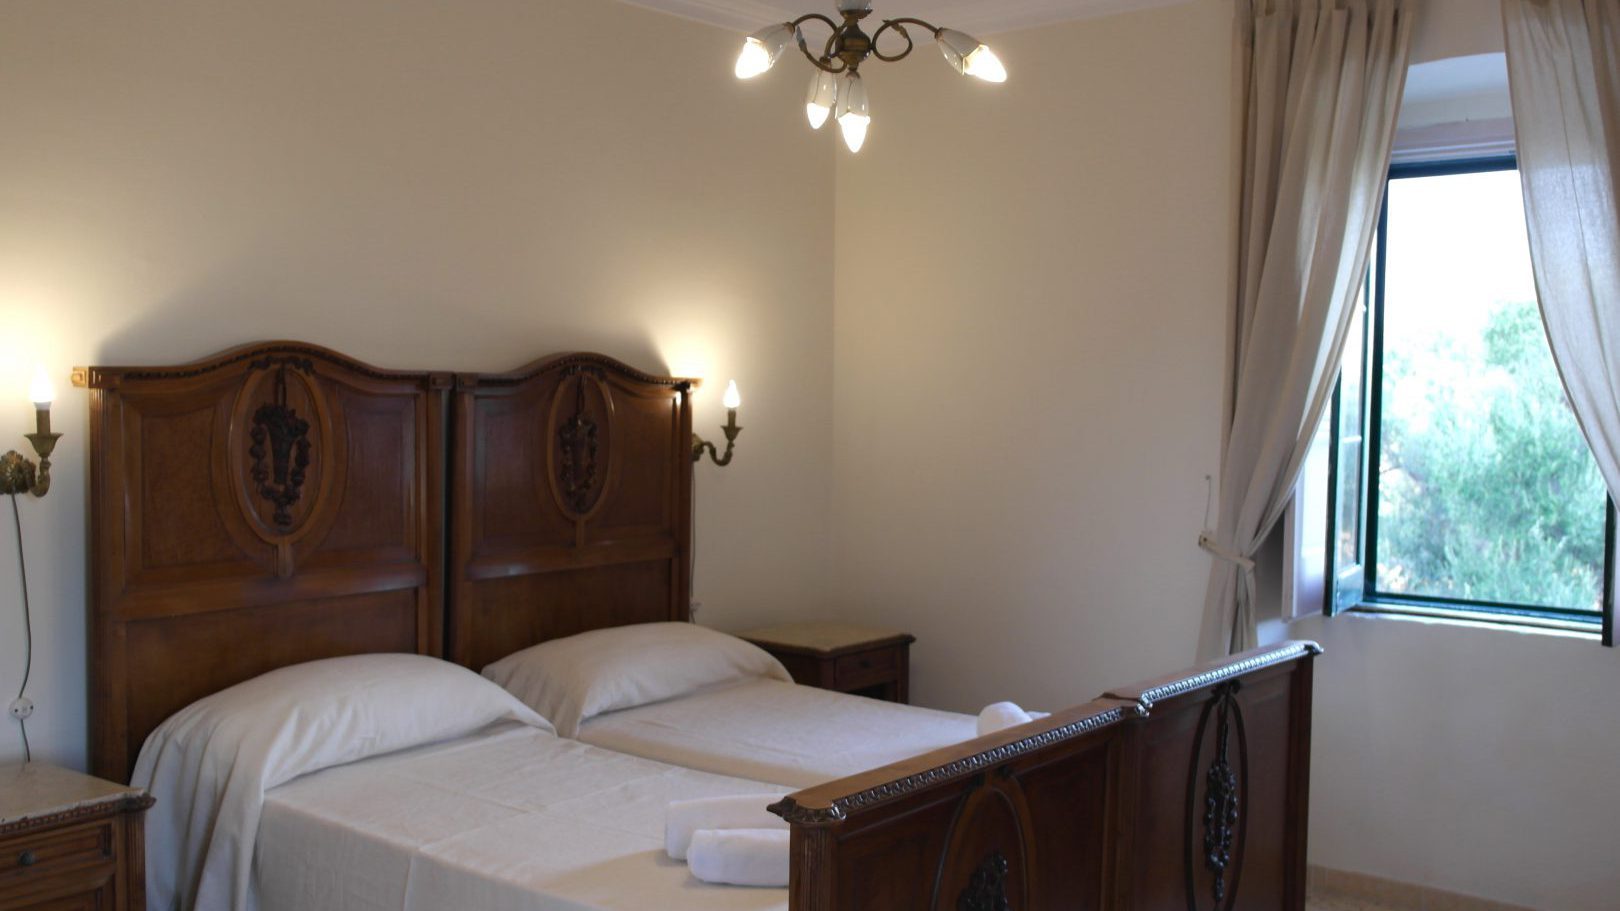 Large bedroom with twin beds in Masseria Bellavista Ostuni Vacation holiday rental villa in Puglia with pool and seaview